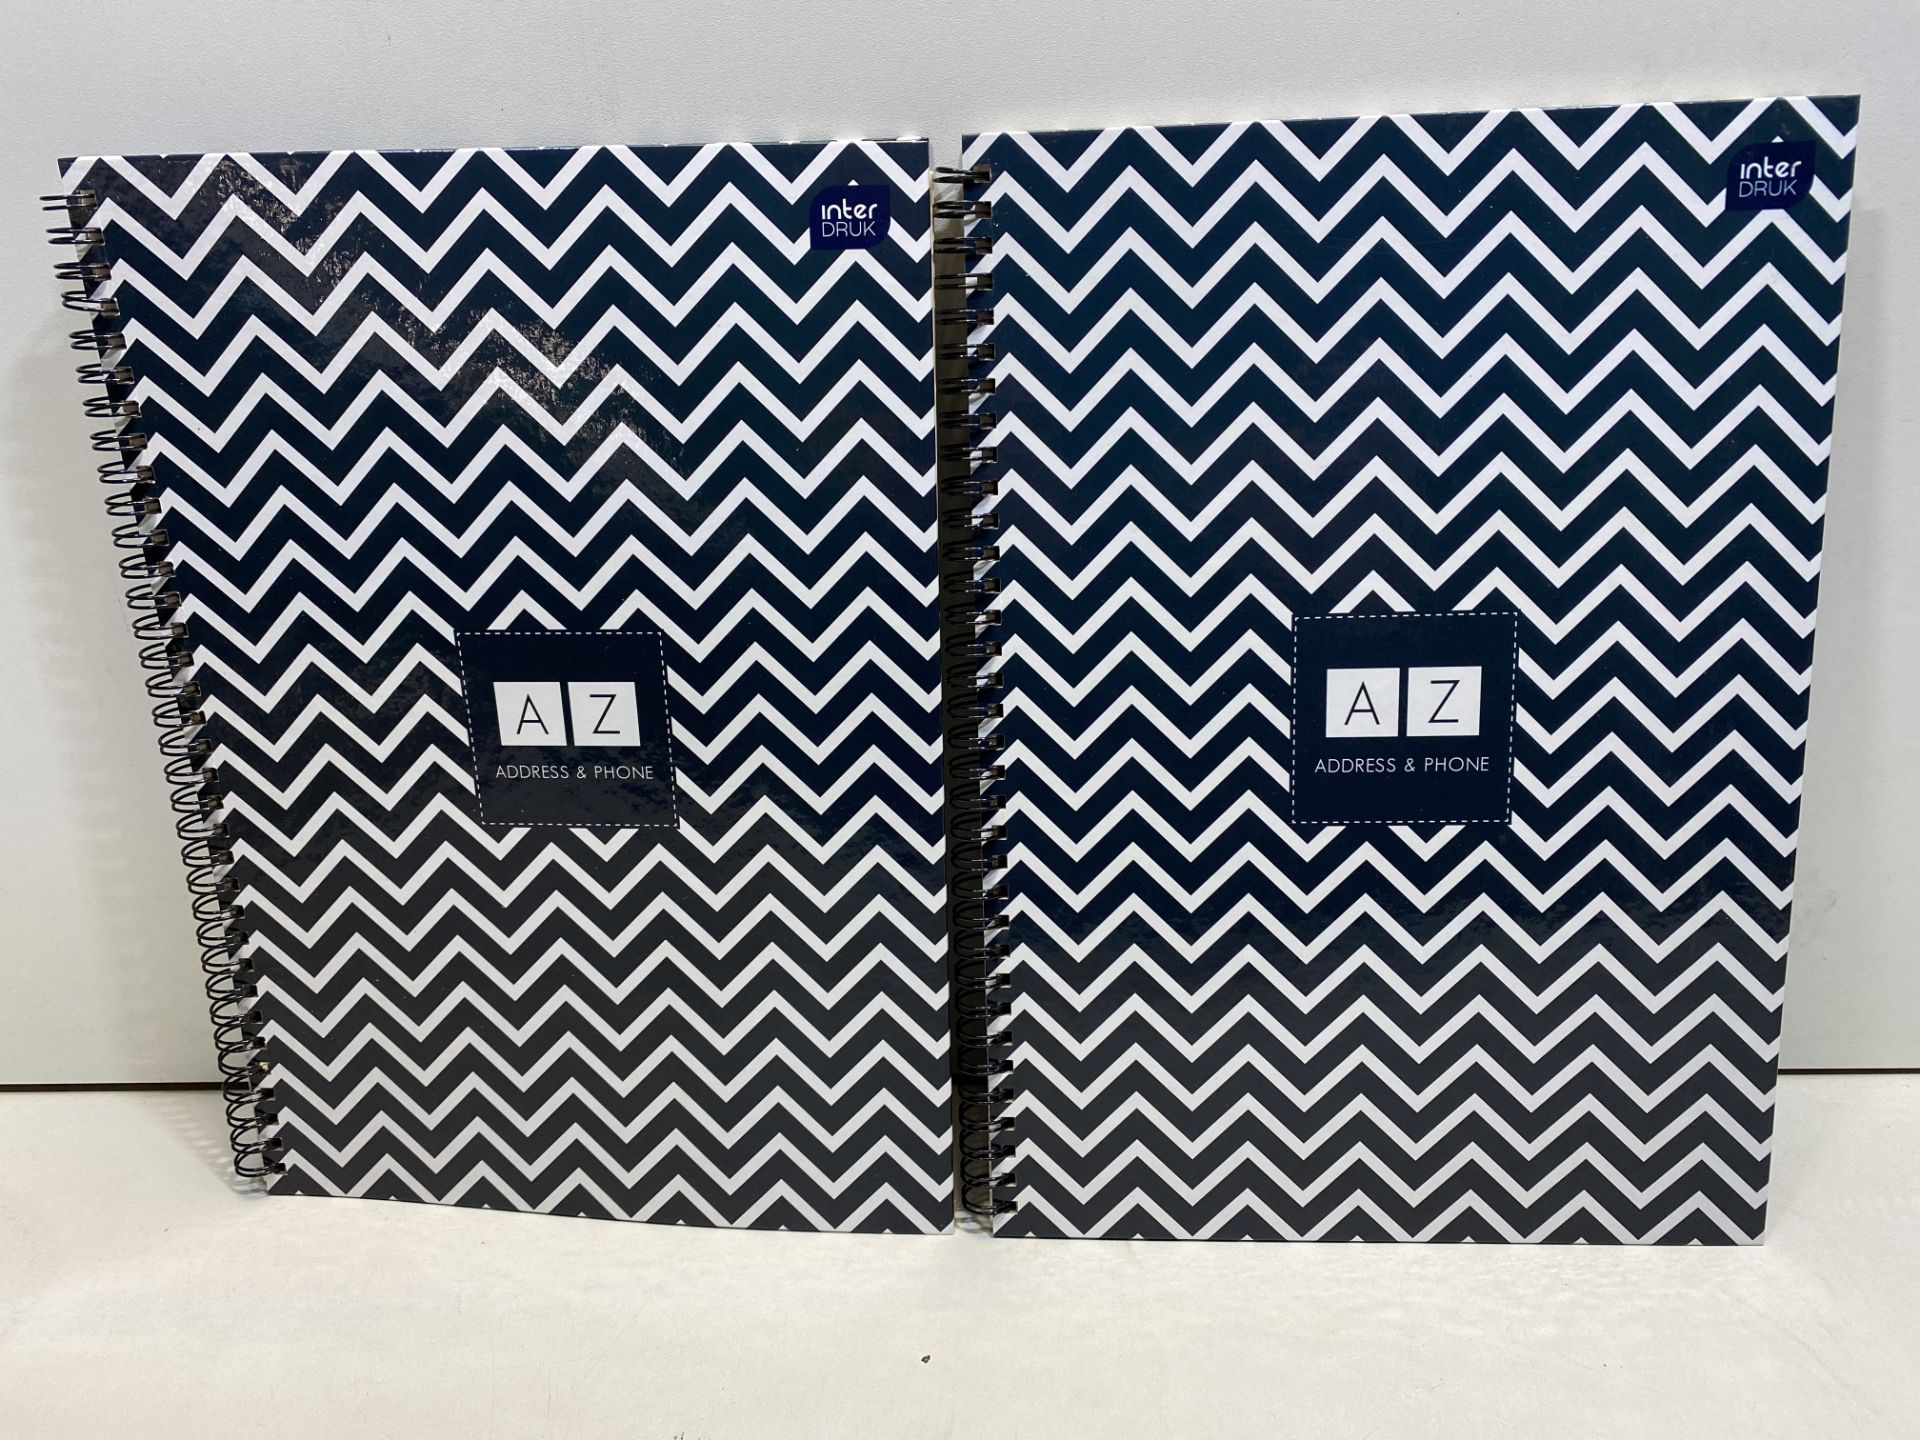 7 x Various A4 Address & Phone A-Z Notepads | 5902277171108 - Image 5 of 7